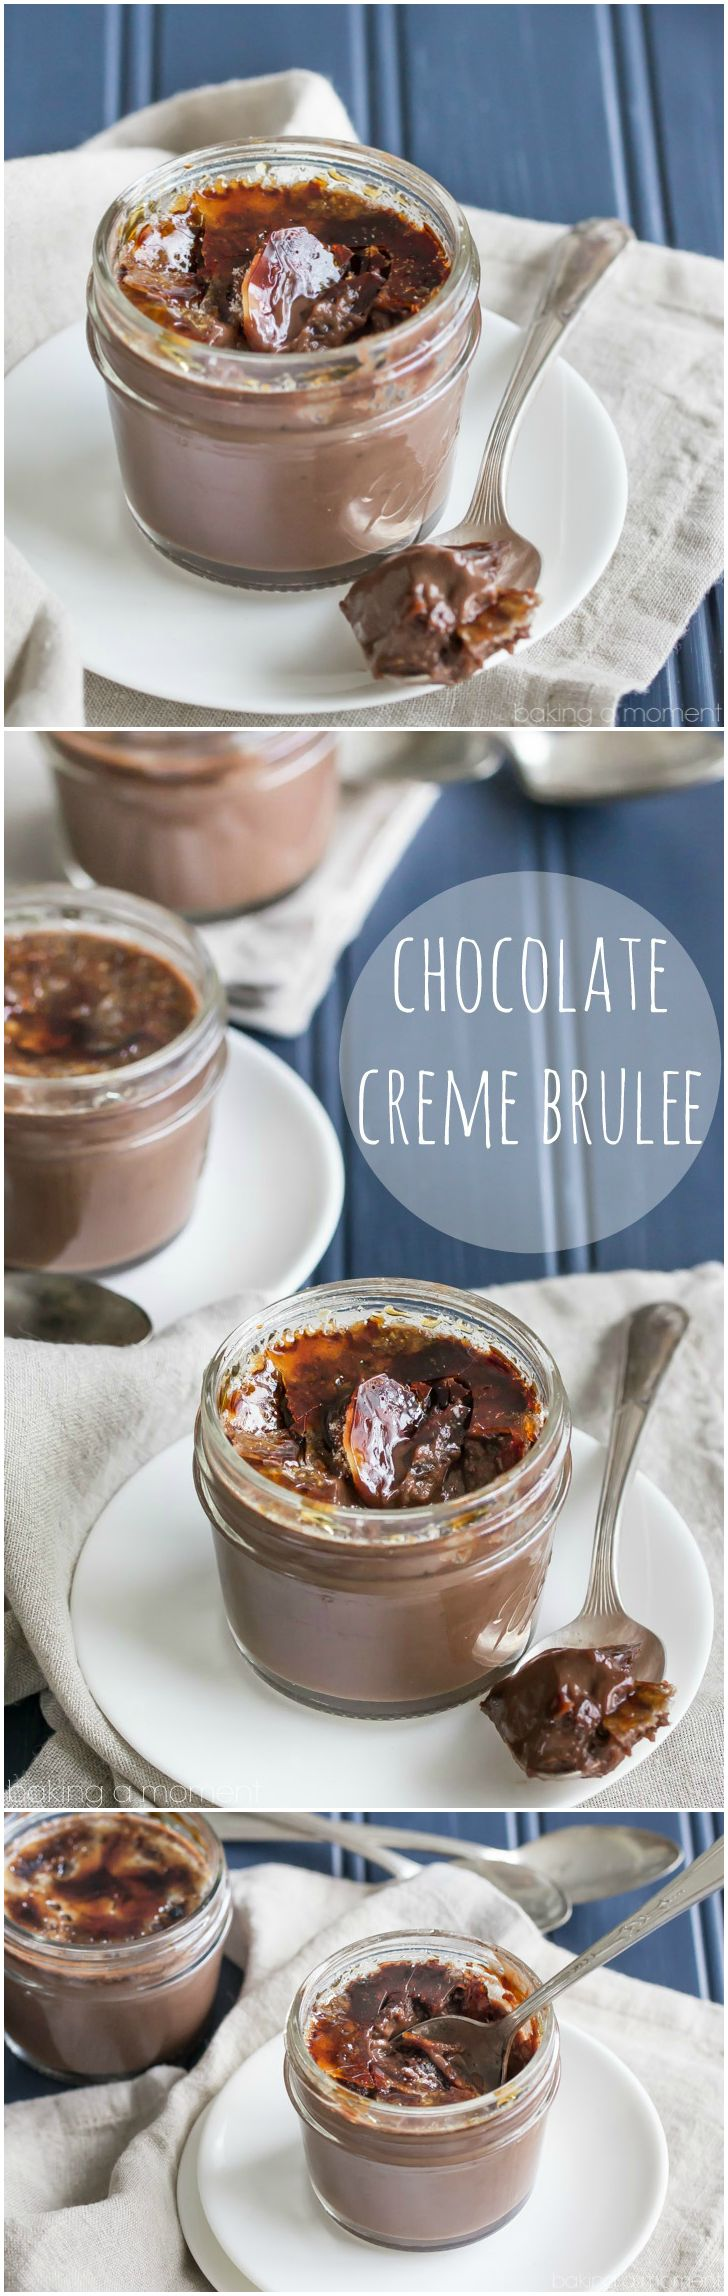 Chocolate creme brulee: an impressive dessert that's so simple to make. Just a handful of simple ingredients and you'll be in chocolate heaven!  food desserts chocolate